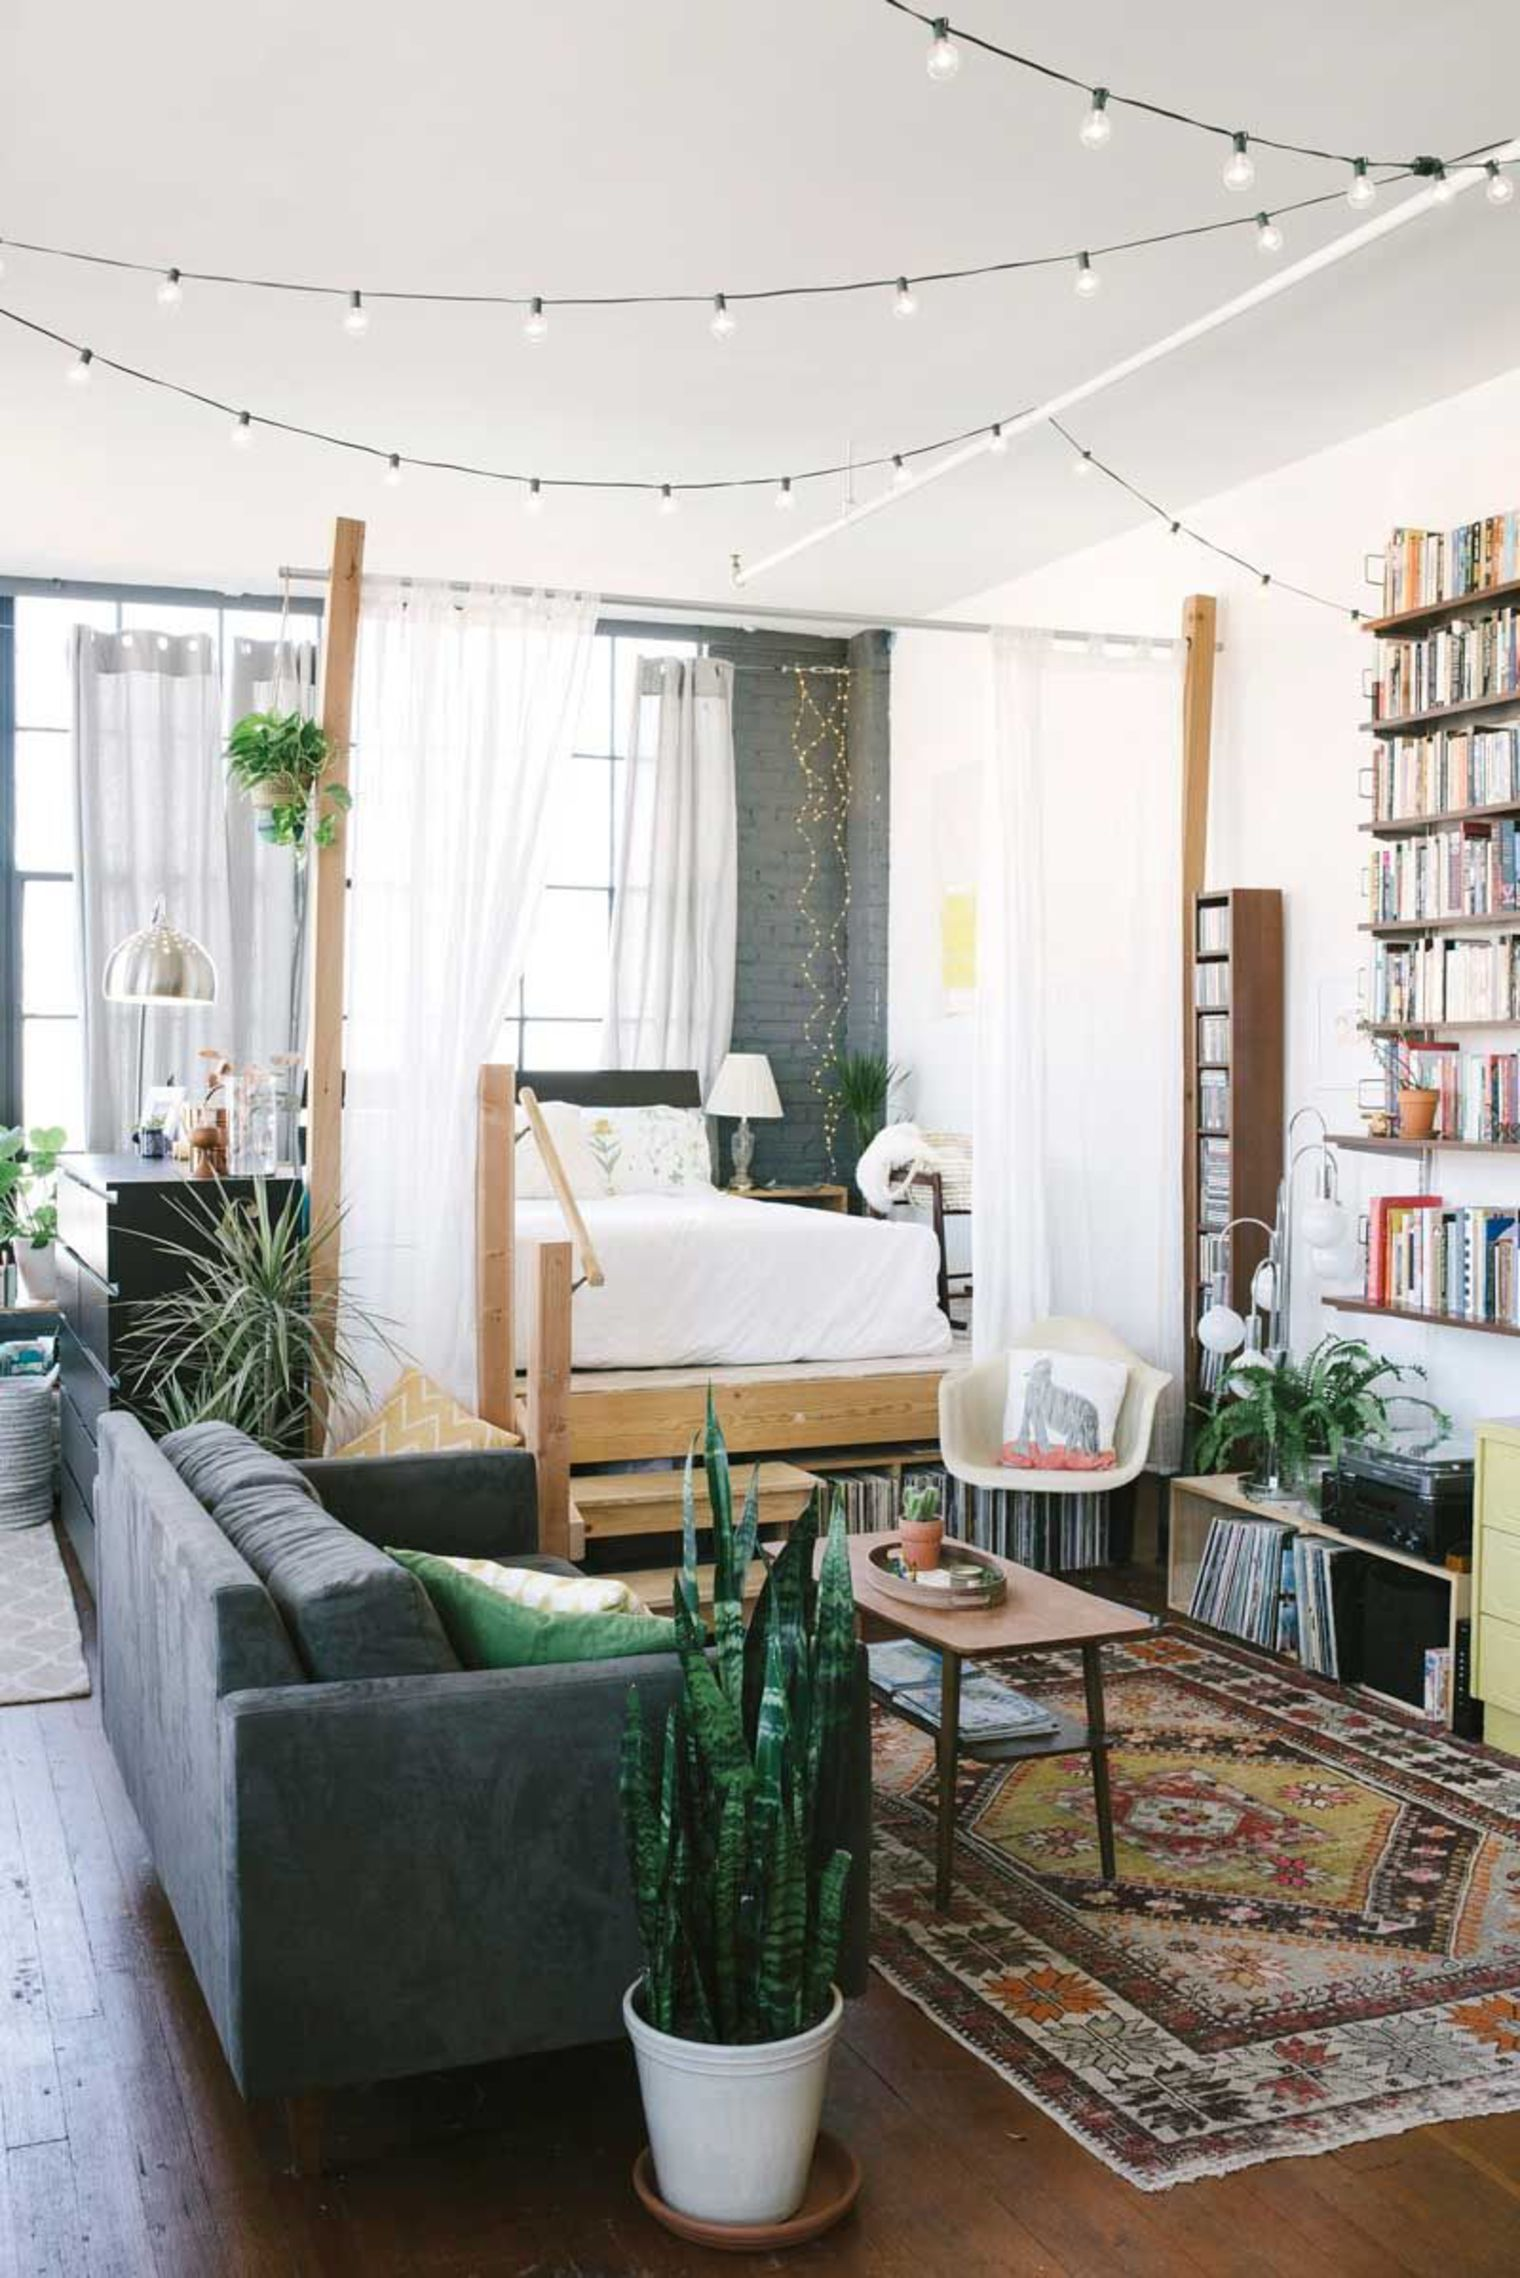 Privacy please ideas for carving out a cozy bedroom in a studio